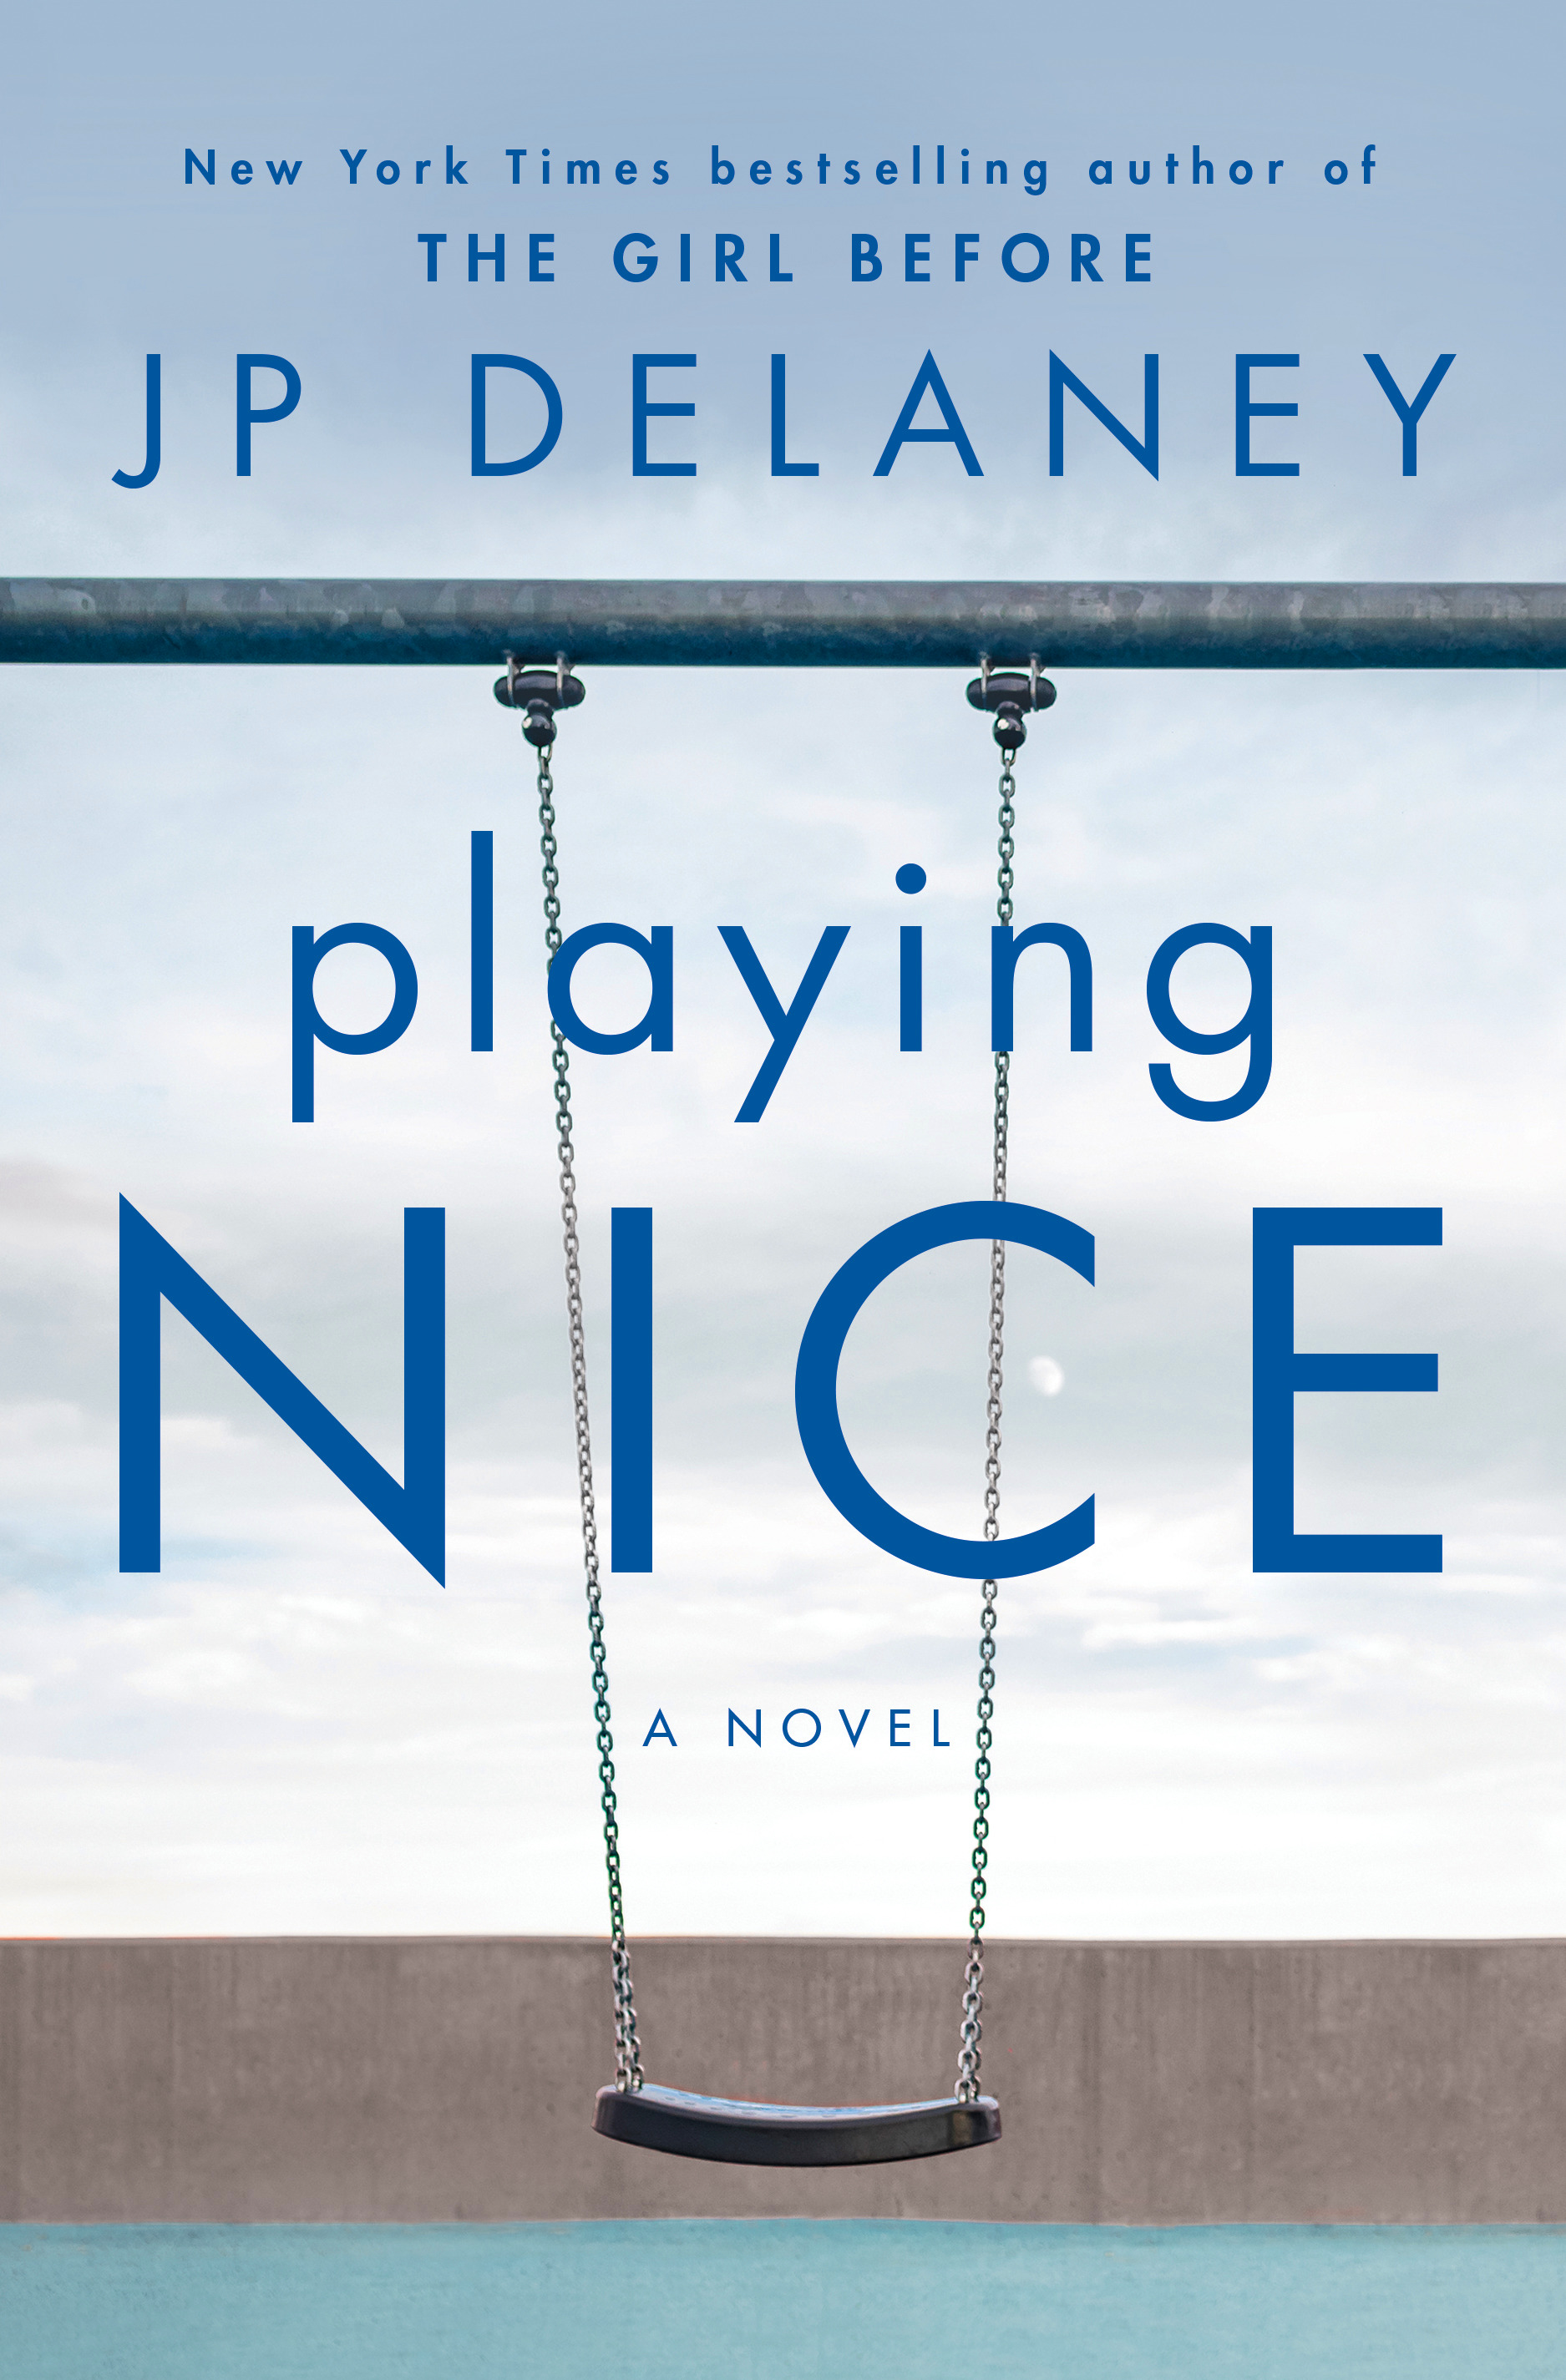 Playing Nice by J.P. Delaney